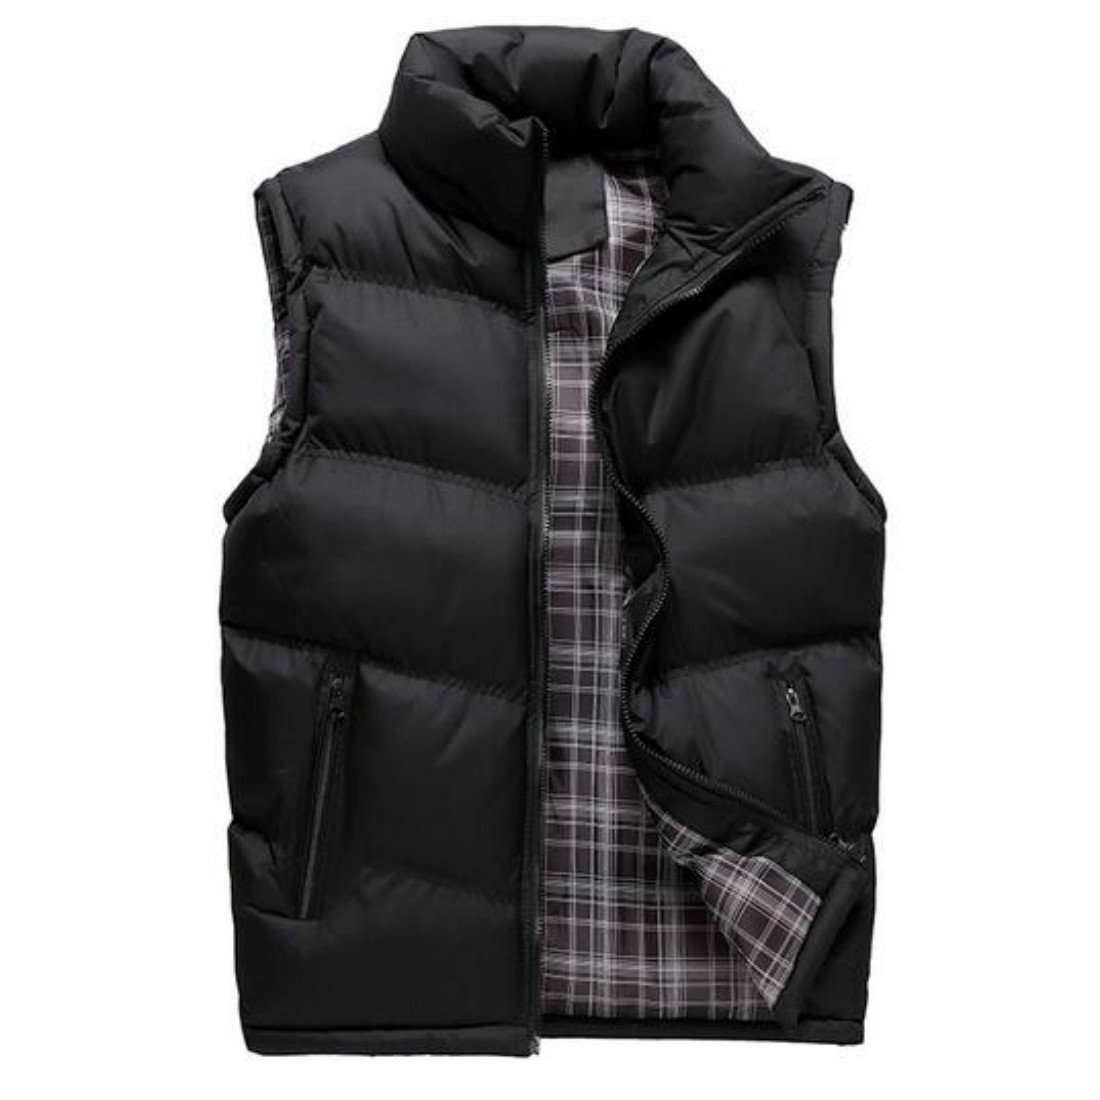 Colygamala Men's Fall and Winter Quilted Sports Down Vest Lightweight Packable Down Waistcoat 2017072501-BL-L-T2XL